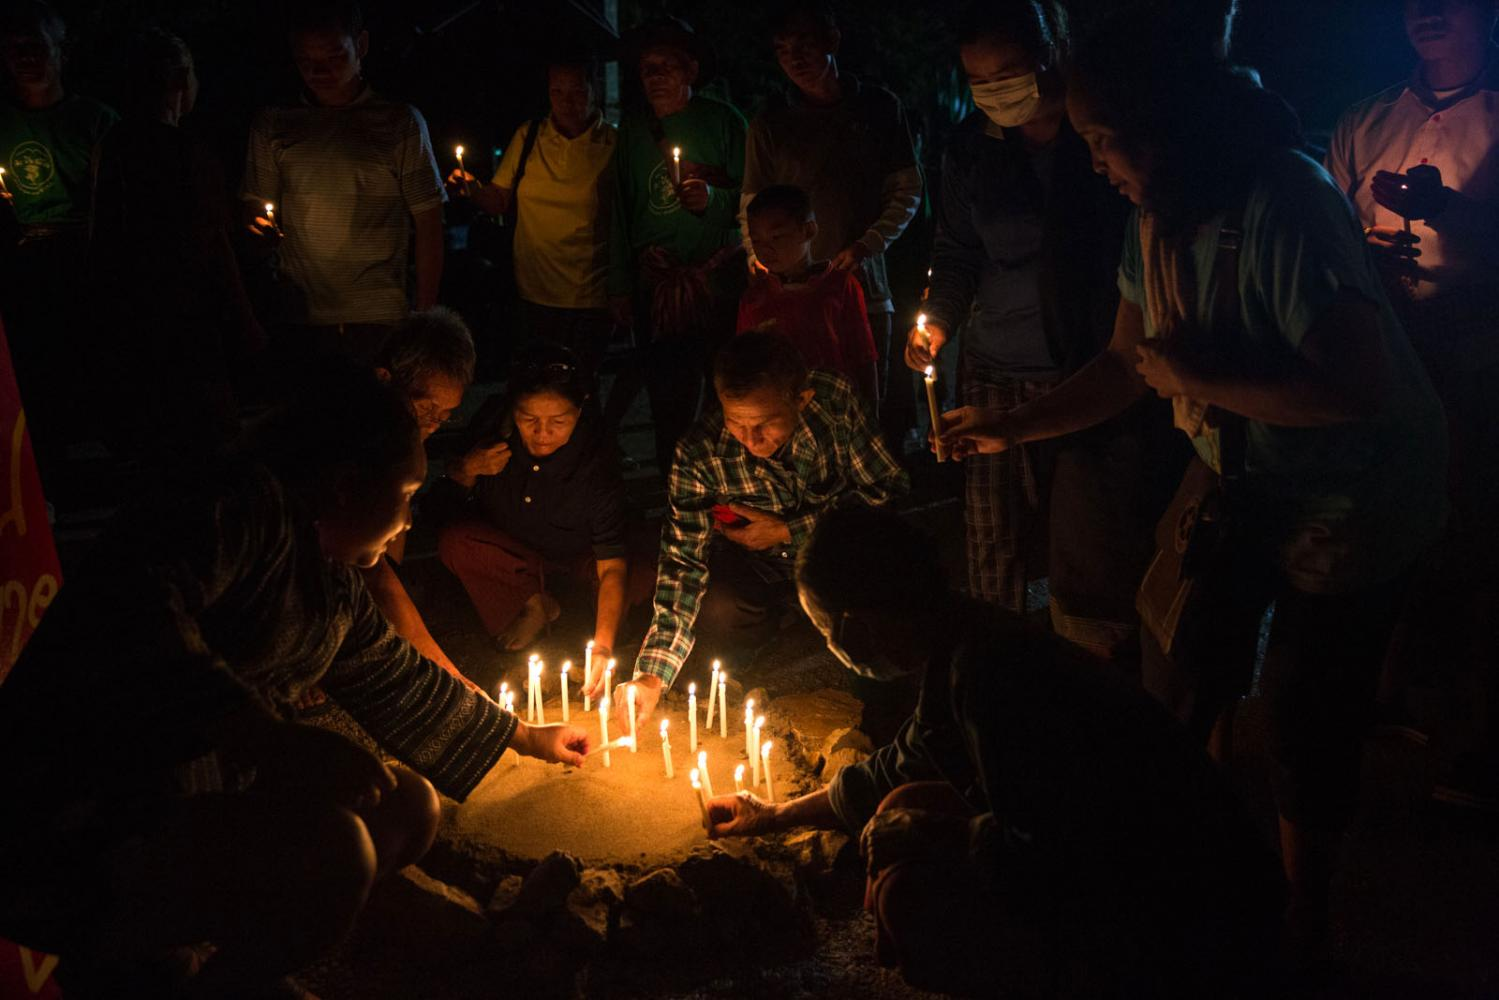 Anti-mining protestors pay tribute to the 4 villagers who have been killed in this prolonged struggle. Nong Bua Lam Phu, Thailand.